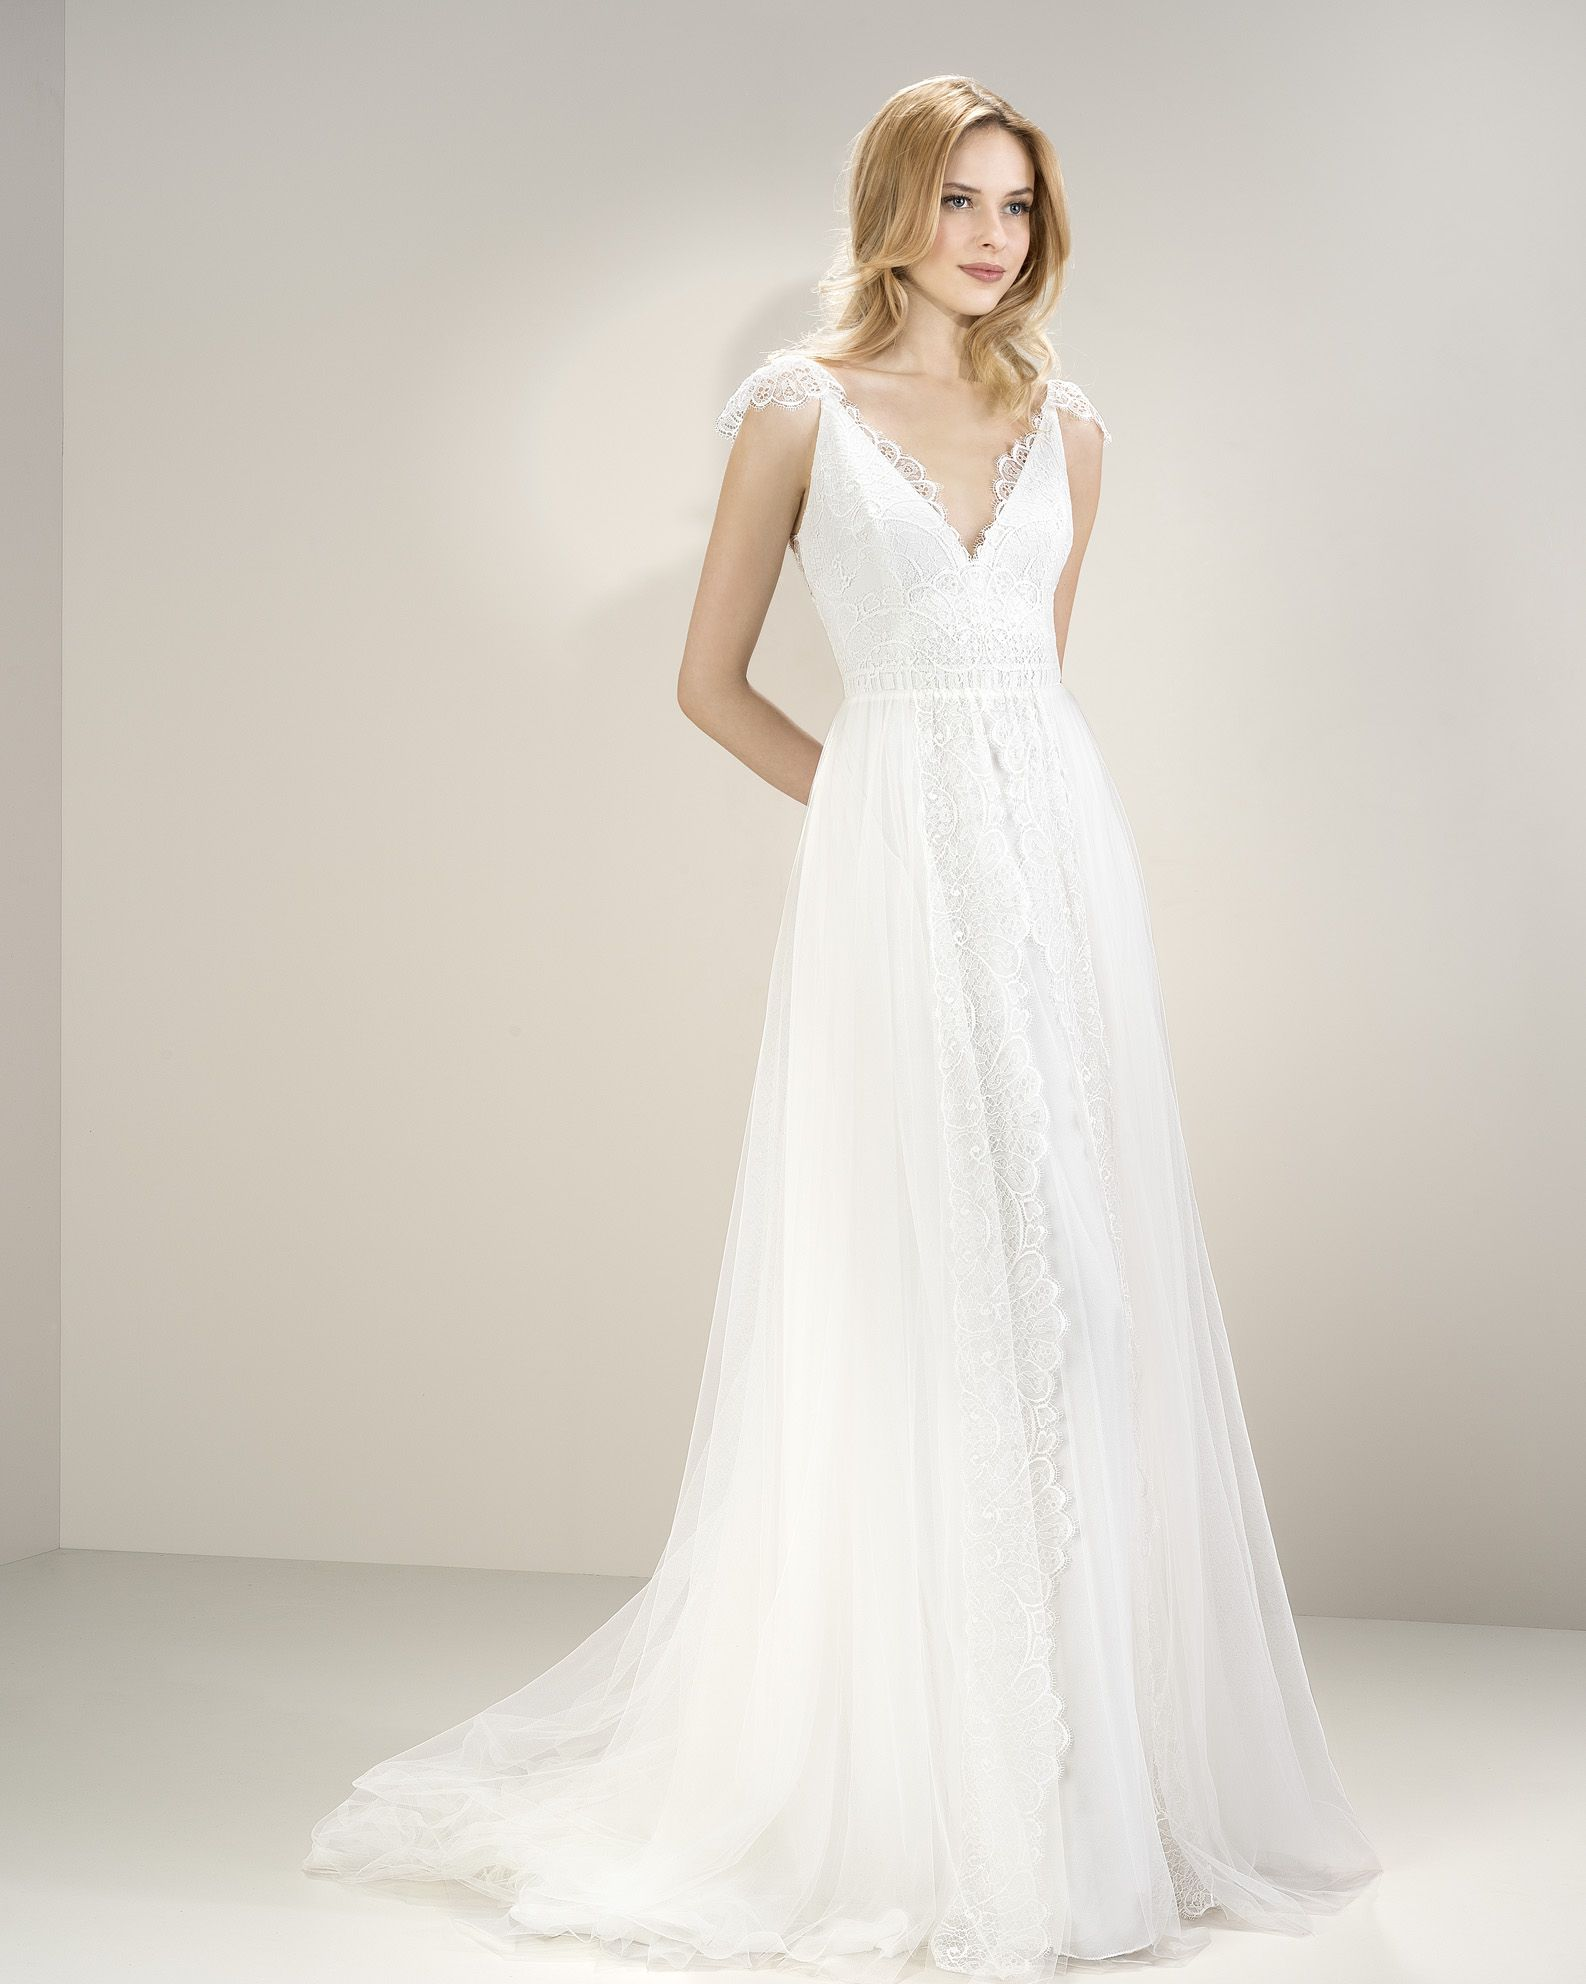 Andrea Bambridge Wedding Gowns Bespoke Bridal Wear And Suppliers Of Ready Made Dresses Accessories Etc